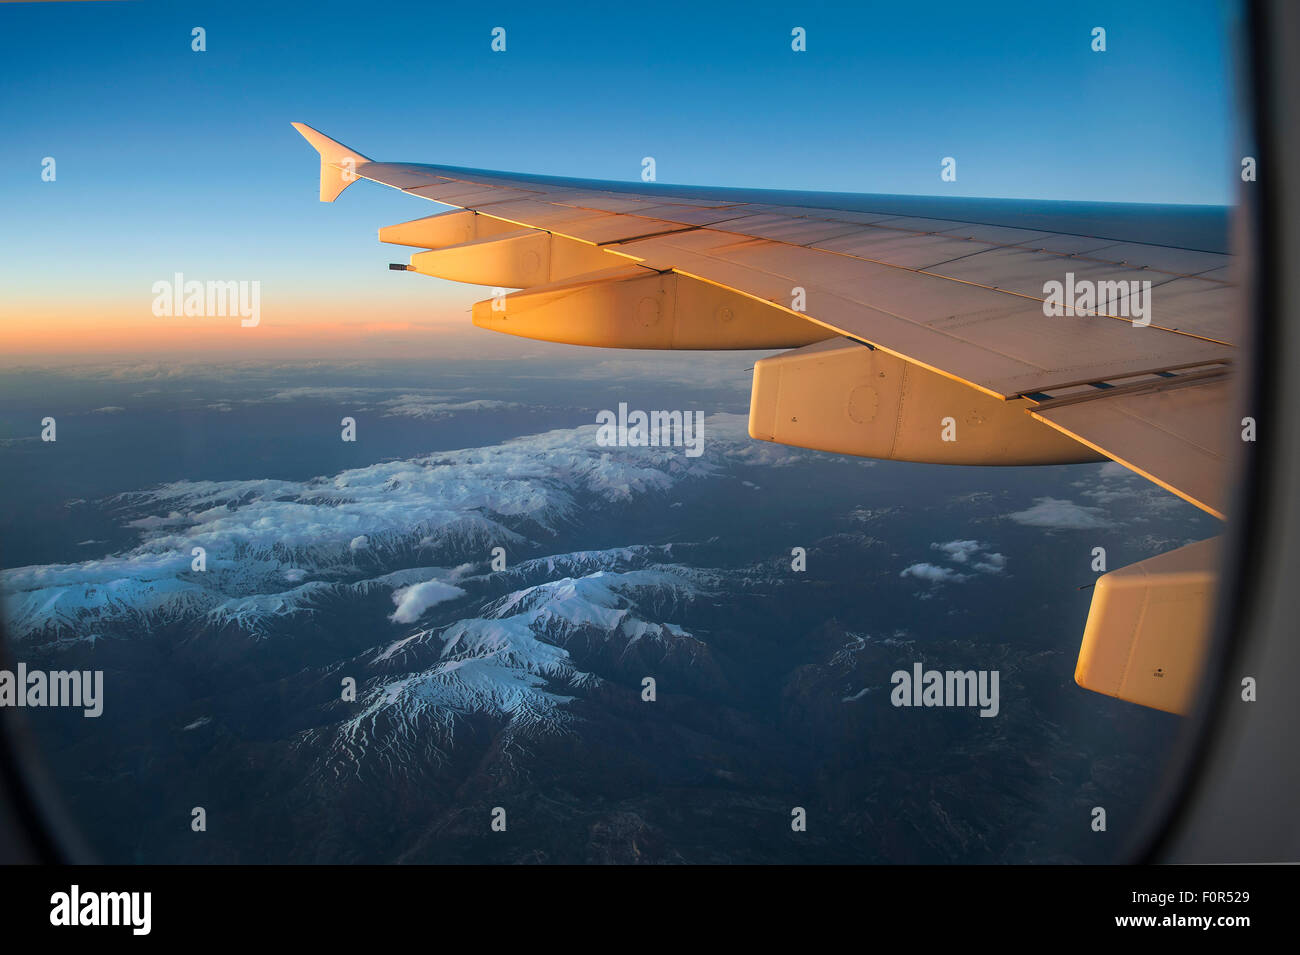 Wing of an Airbus A380-800 over snowy mountains, Balkan Mountains - Stock Image